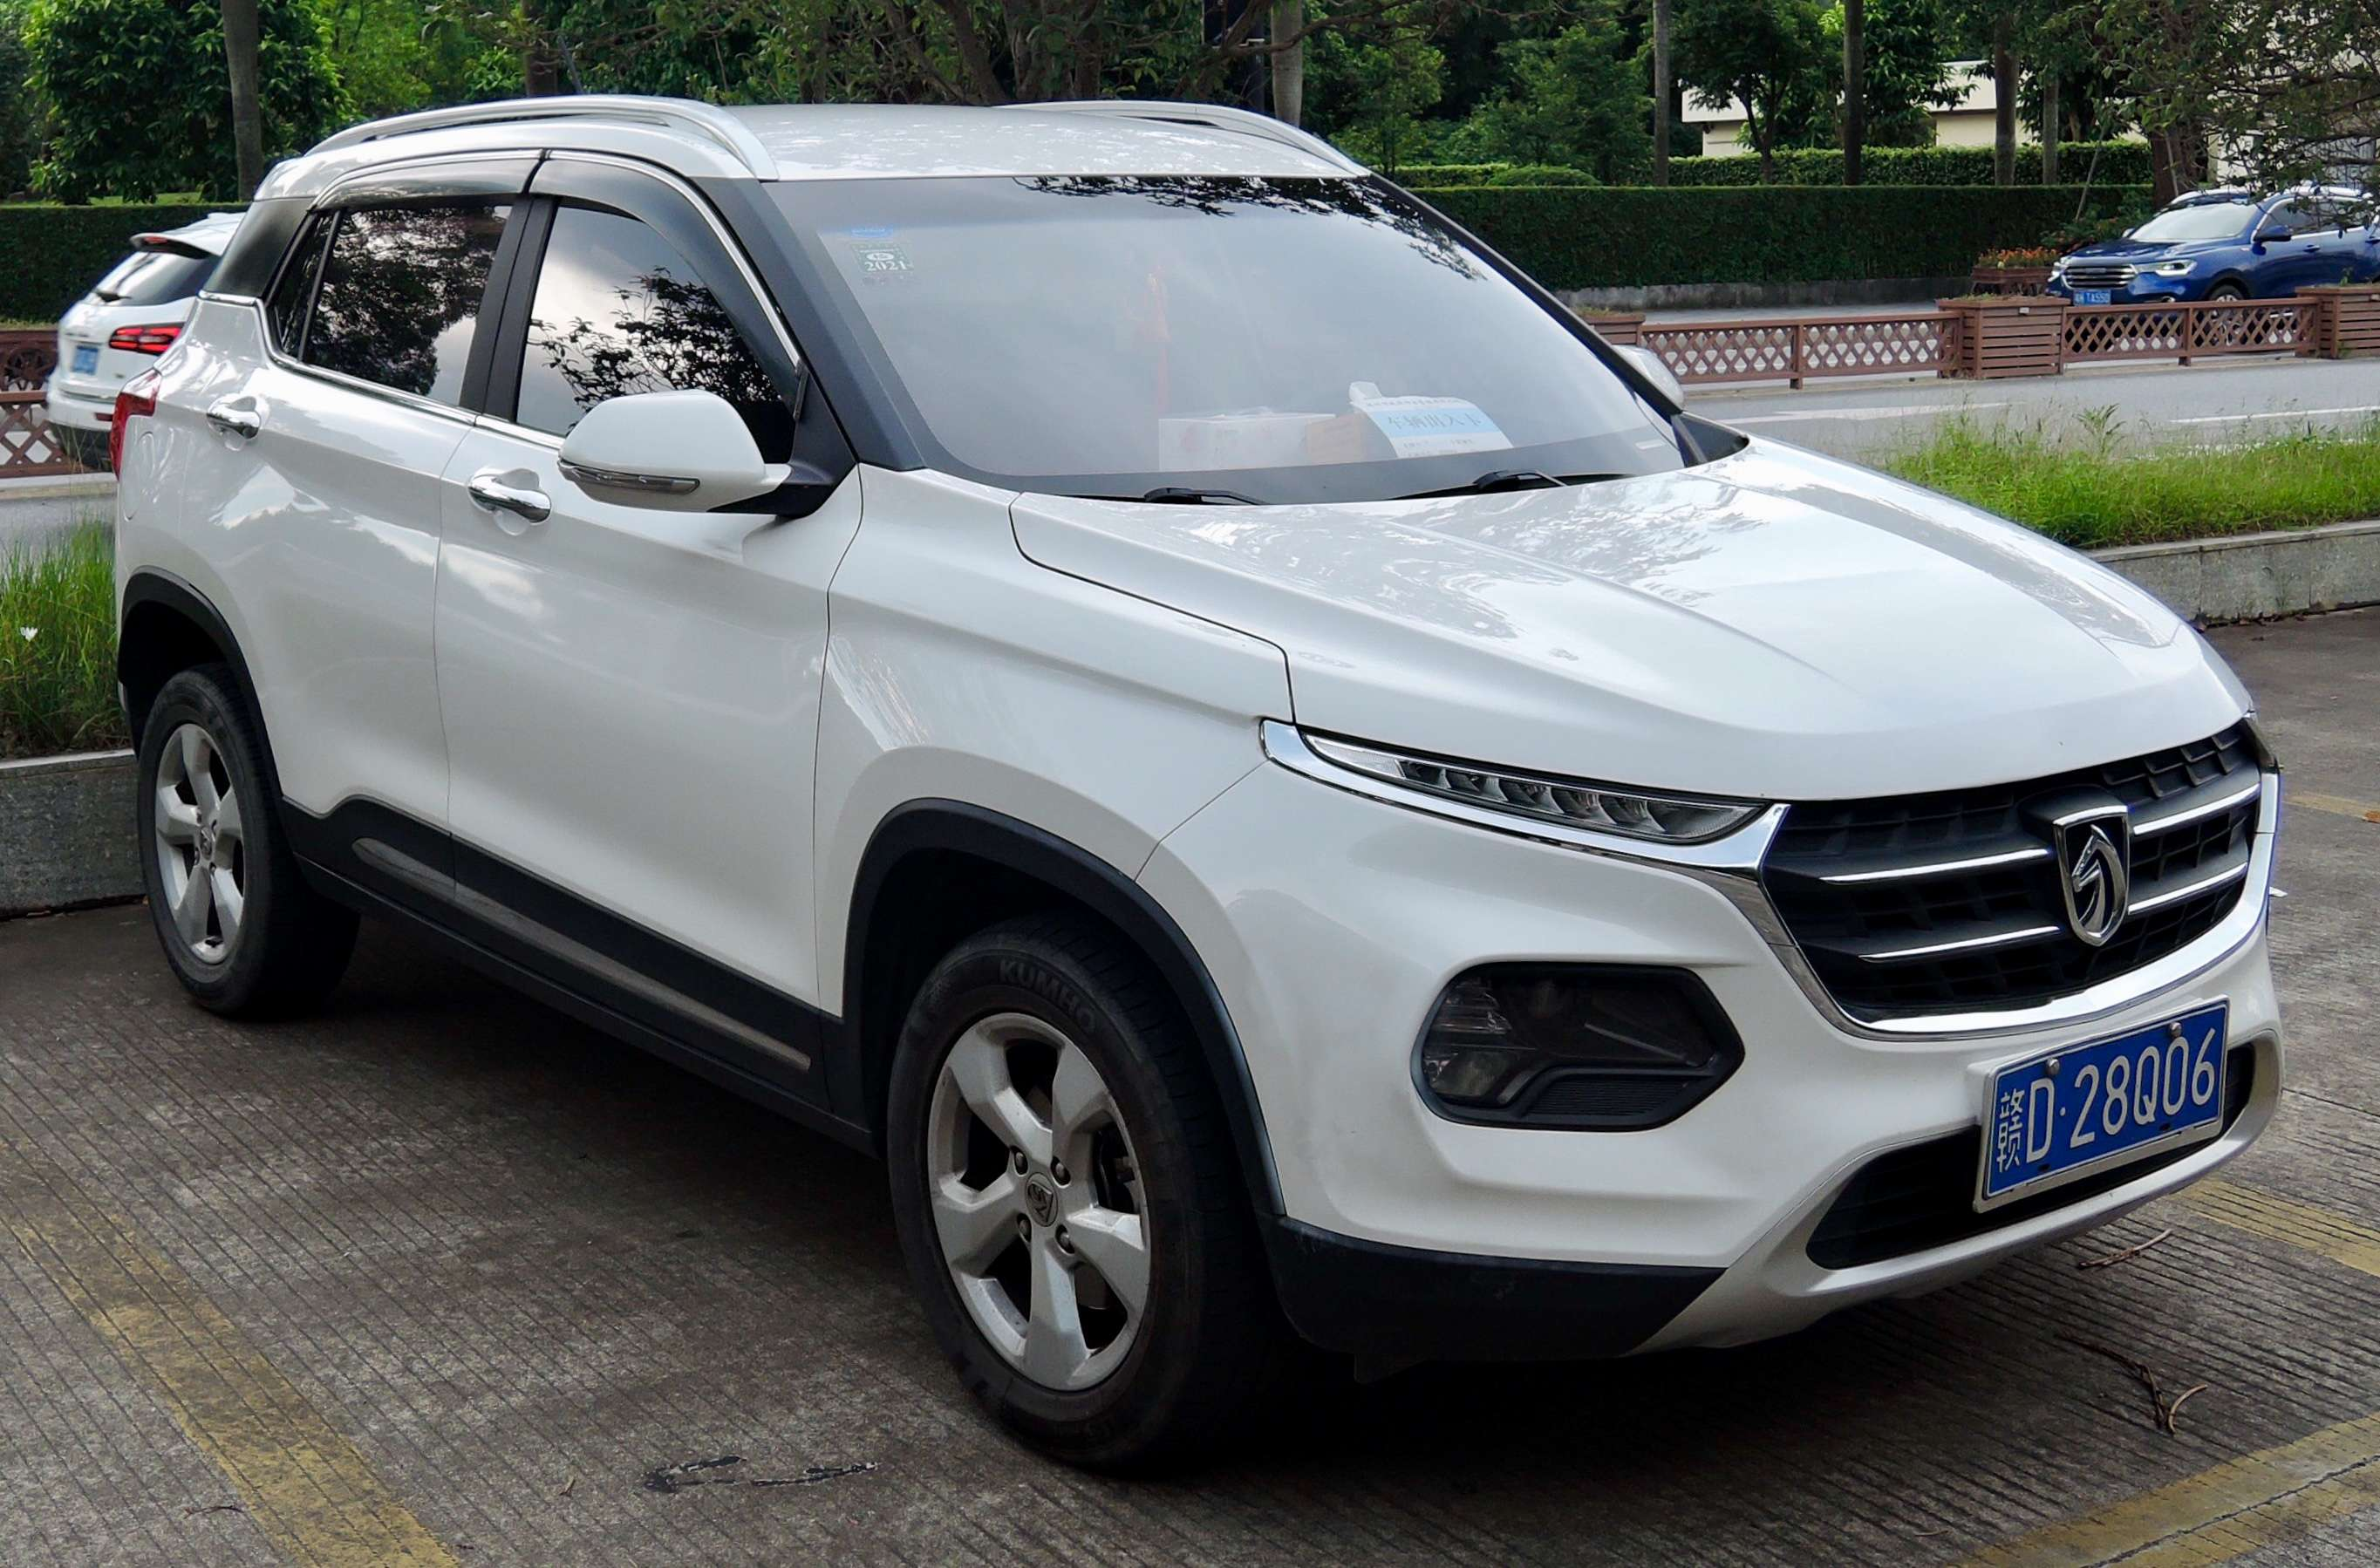 Upcoming Compact Suvs In India Compact Suv S To Flood India In